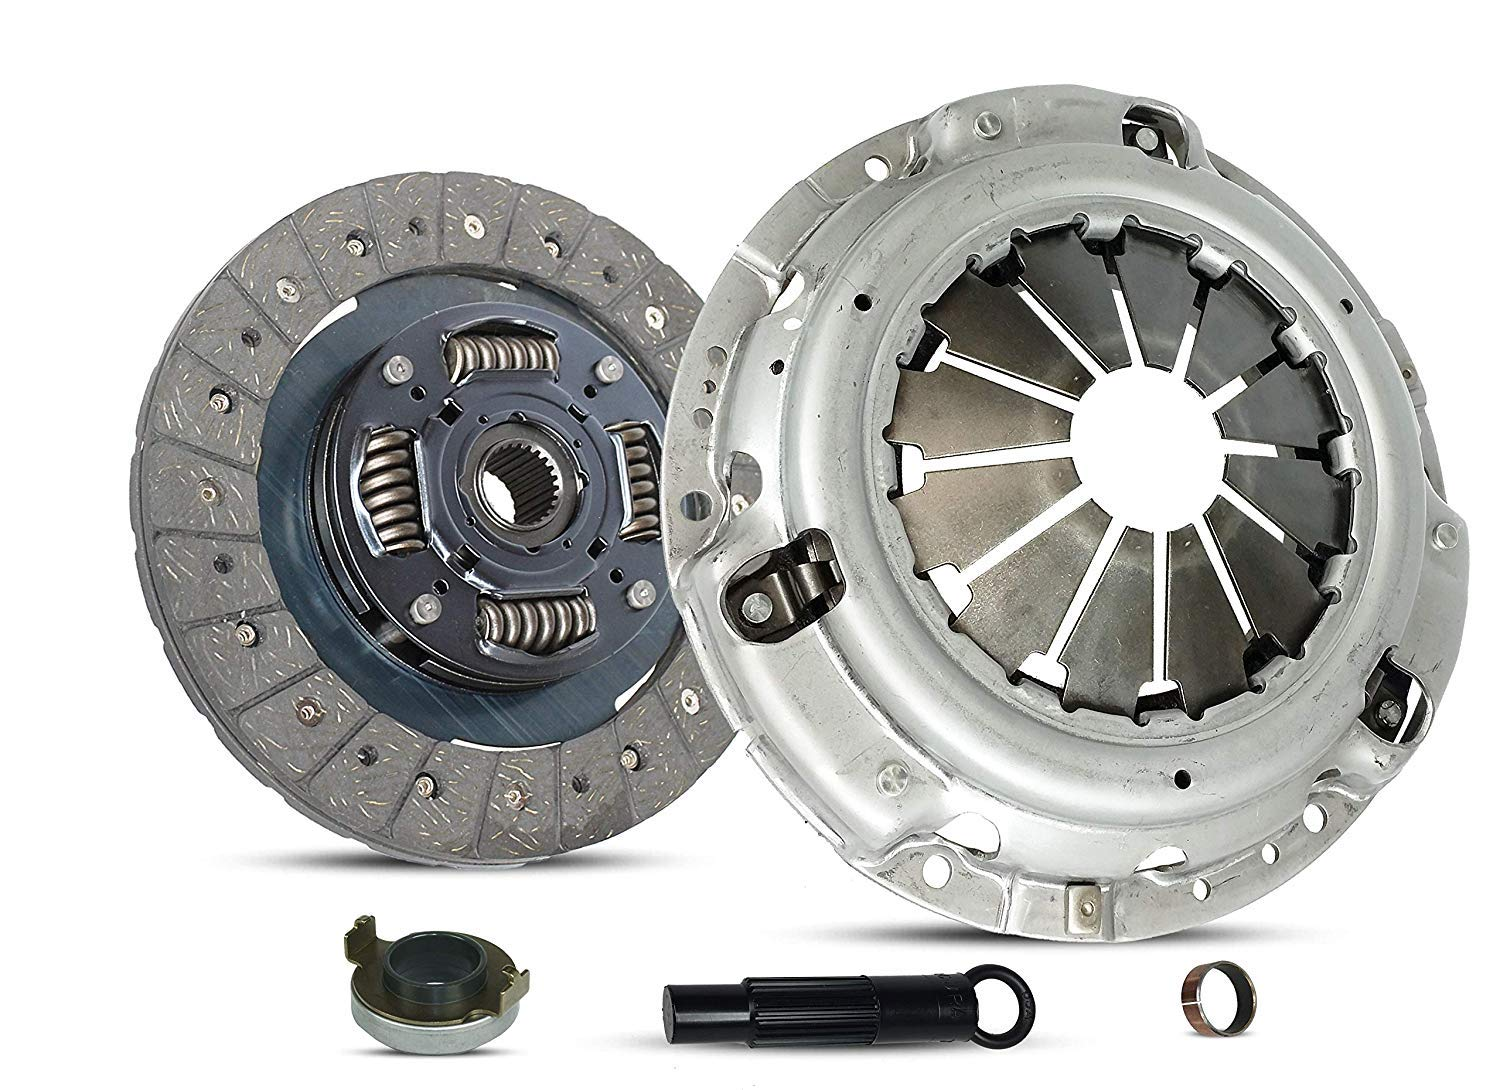 Clutch Kit works with Honda Element Cr-V Ex Lx Sc Dx Sport Utility 4-Door 2.4L l4 GAS DOHC Naturally Aspirated (Flywheel Spec: .112+; Stage 1)